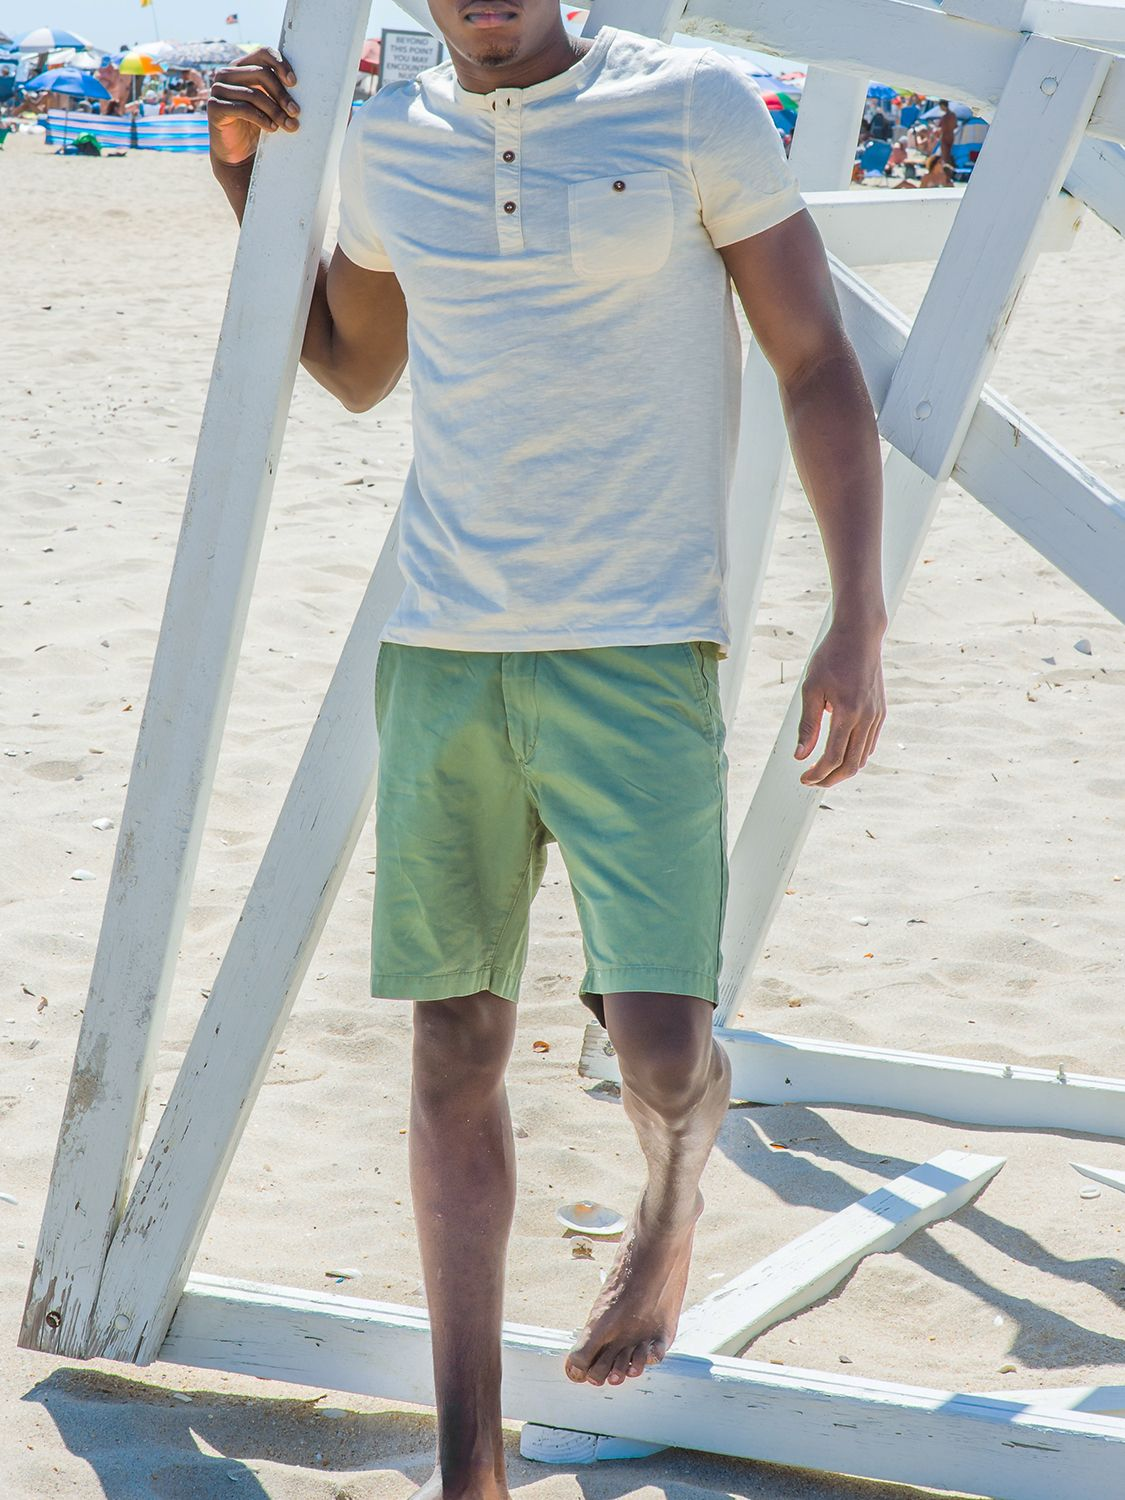 Men's outfit idea for 2021 with green cotton shorts. Suitable for spring and summer.